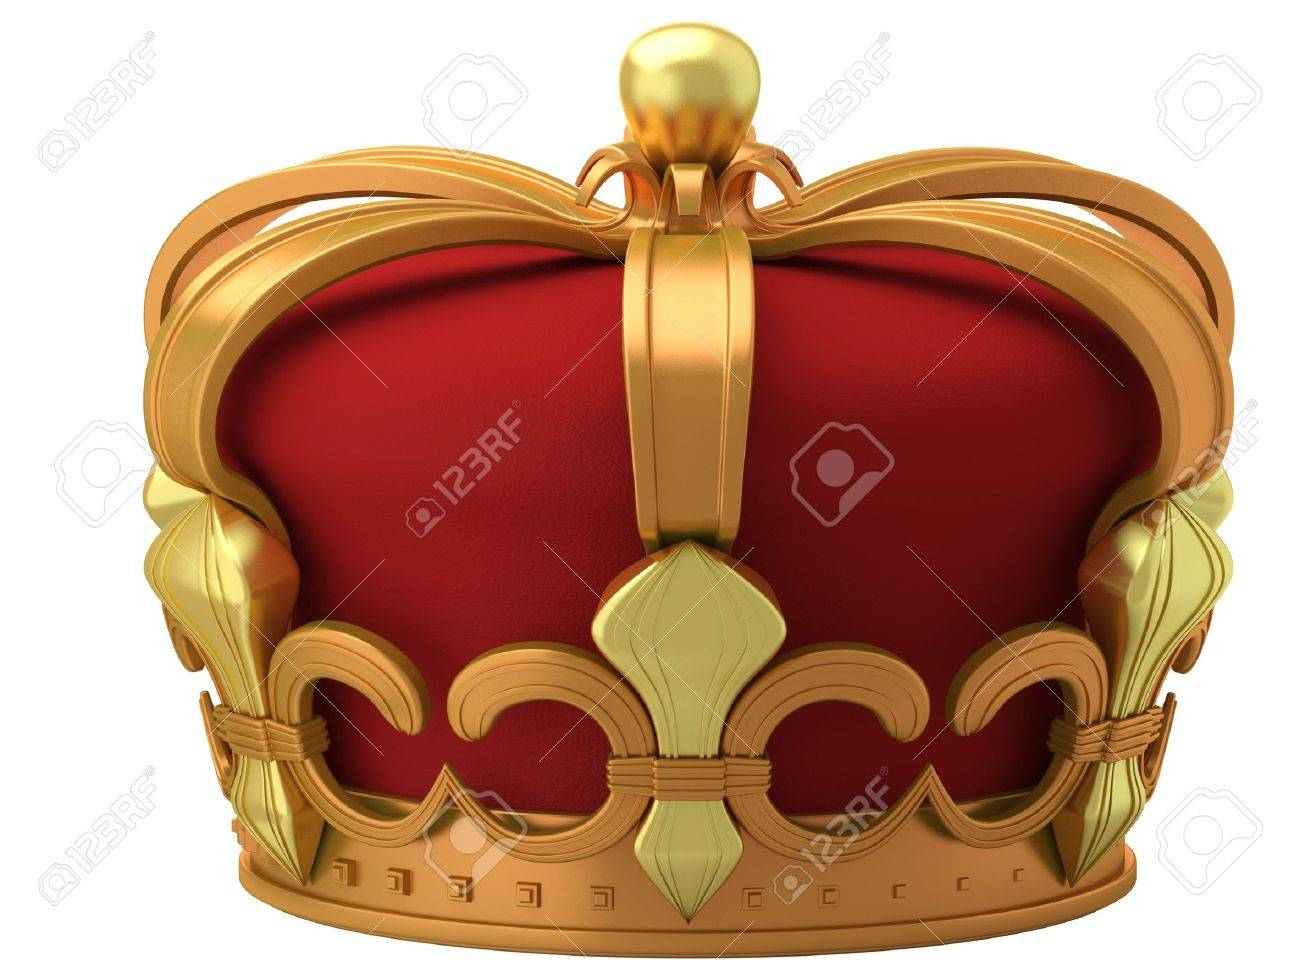 Royal gold crown isolated on a white background Stock Photo - 9278935